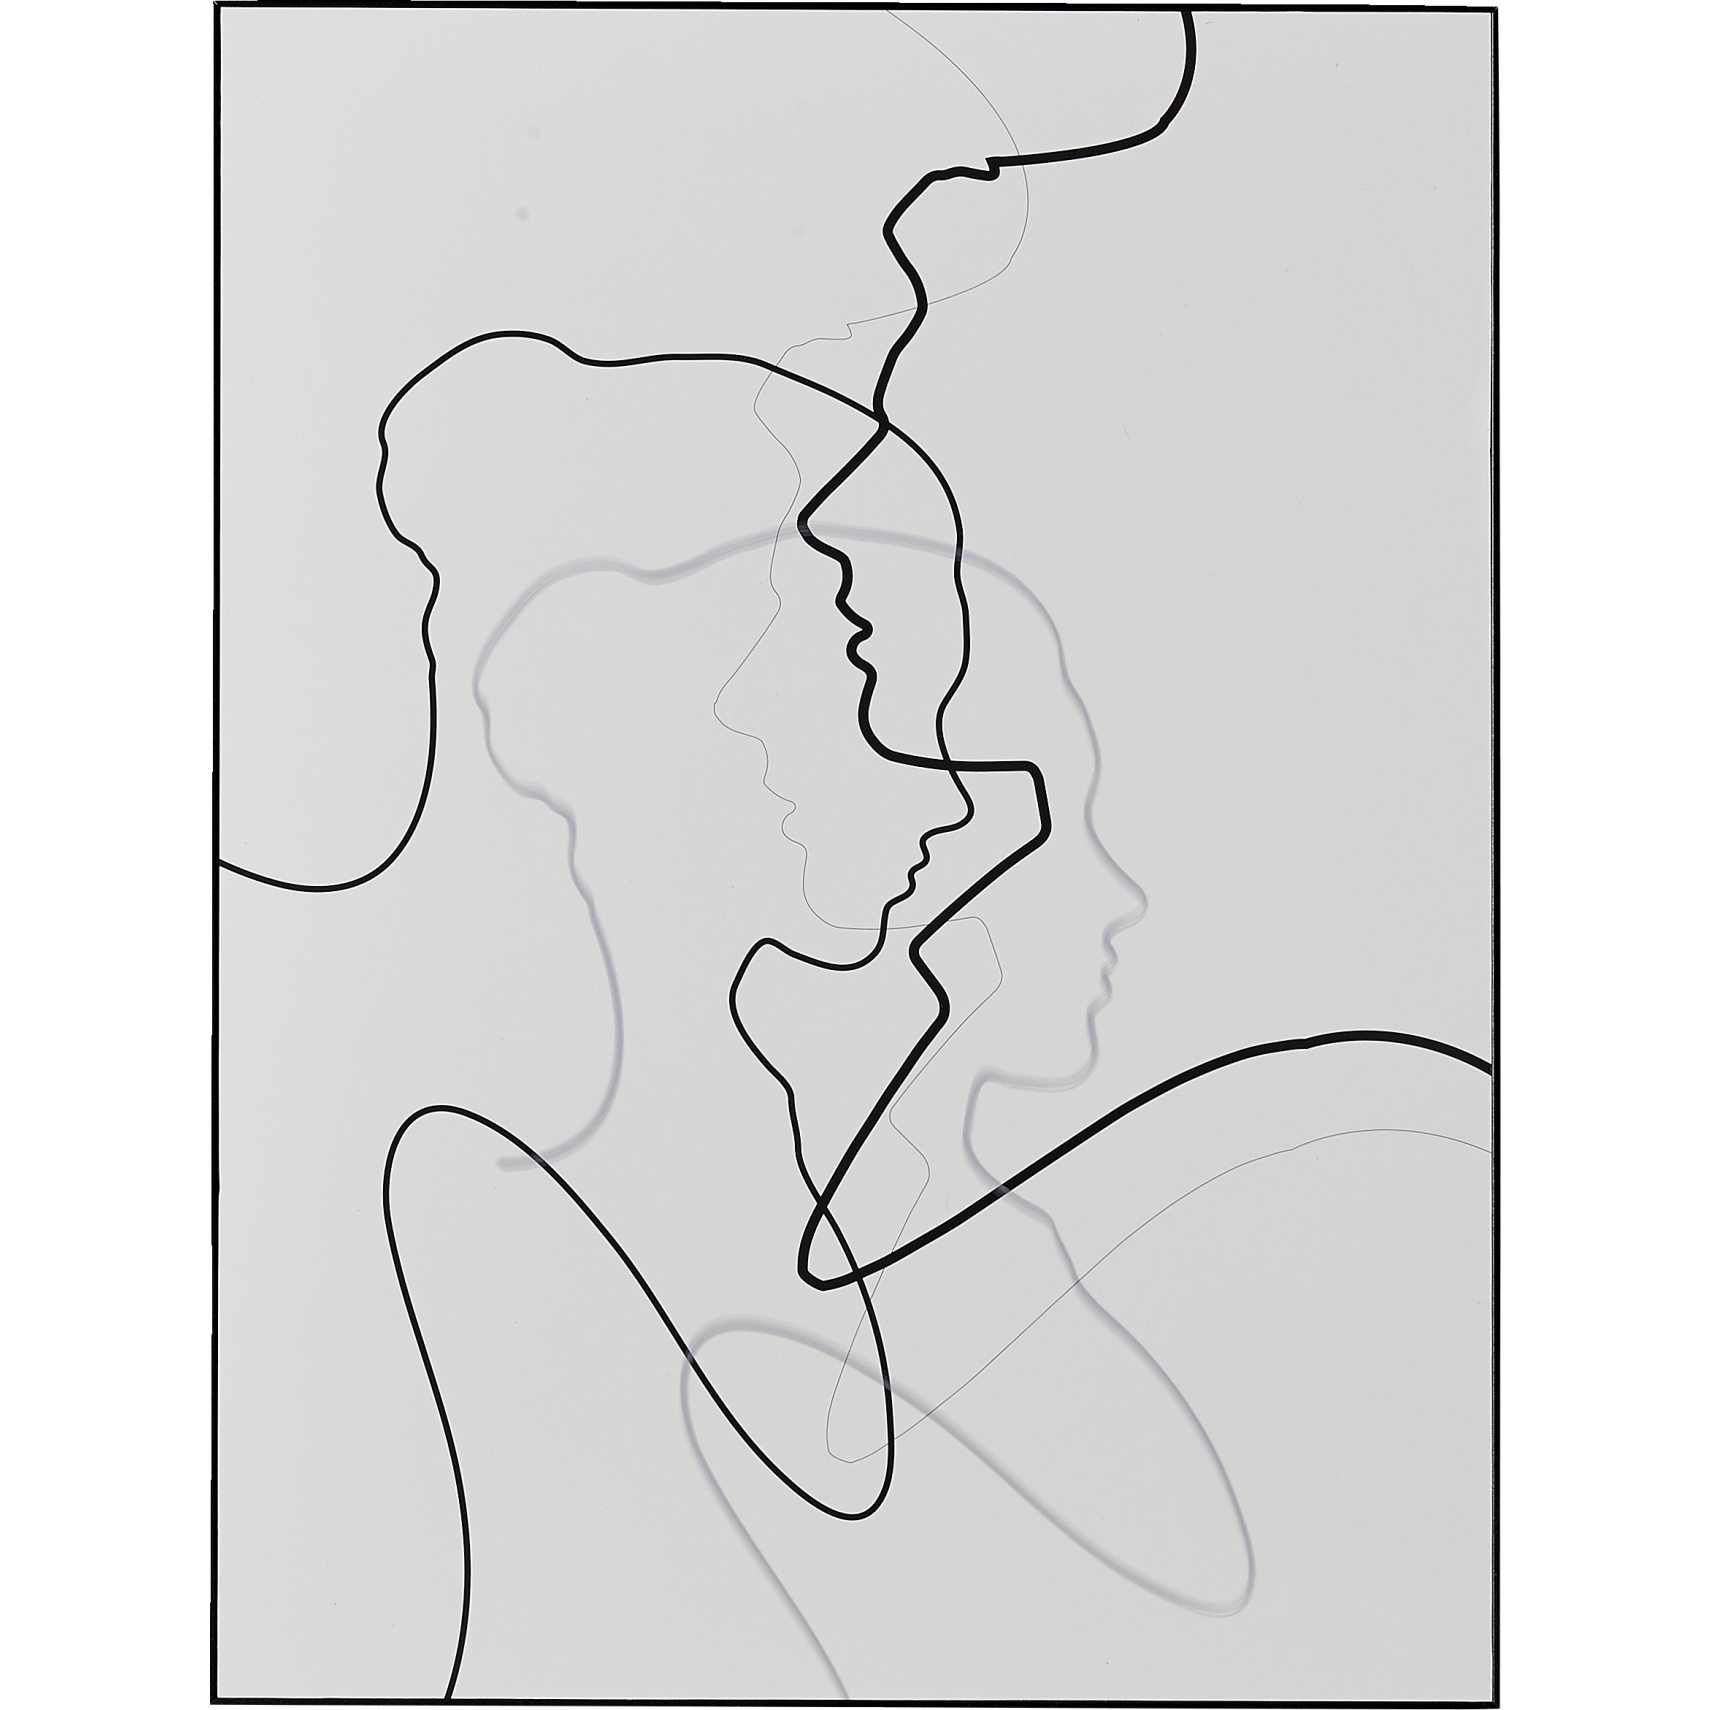 Together Female Plakat med ramme 60 x 80 x 7 cm - Blank, blank og Blank